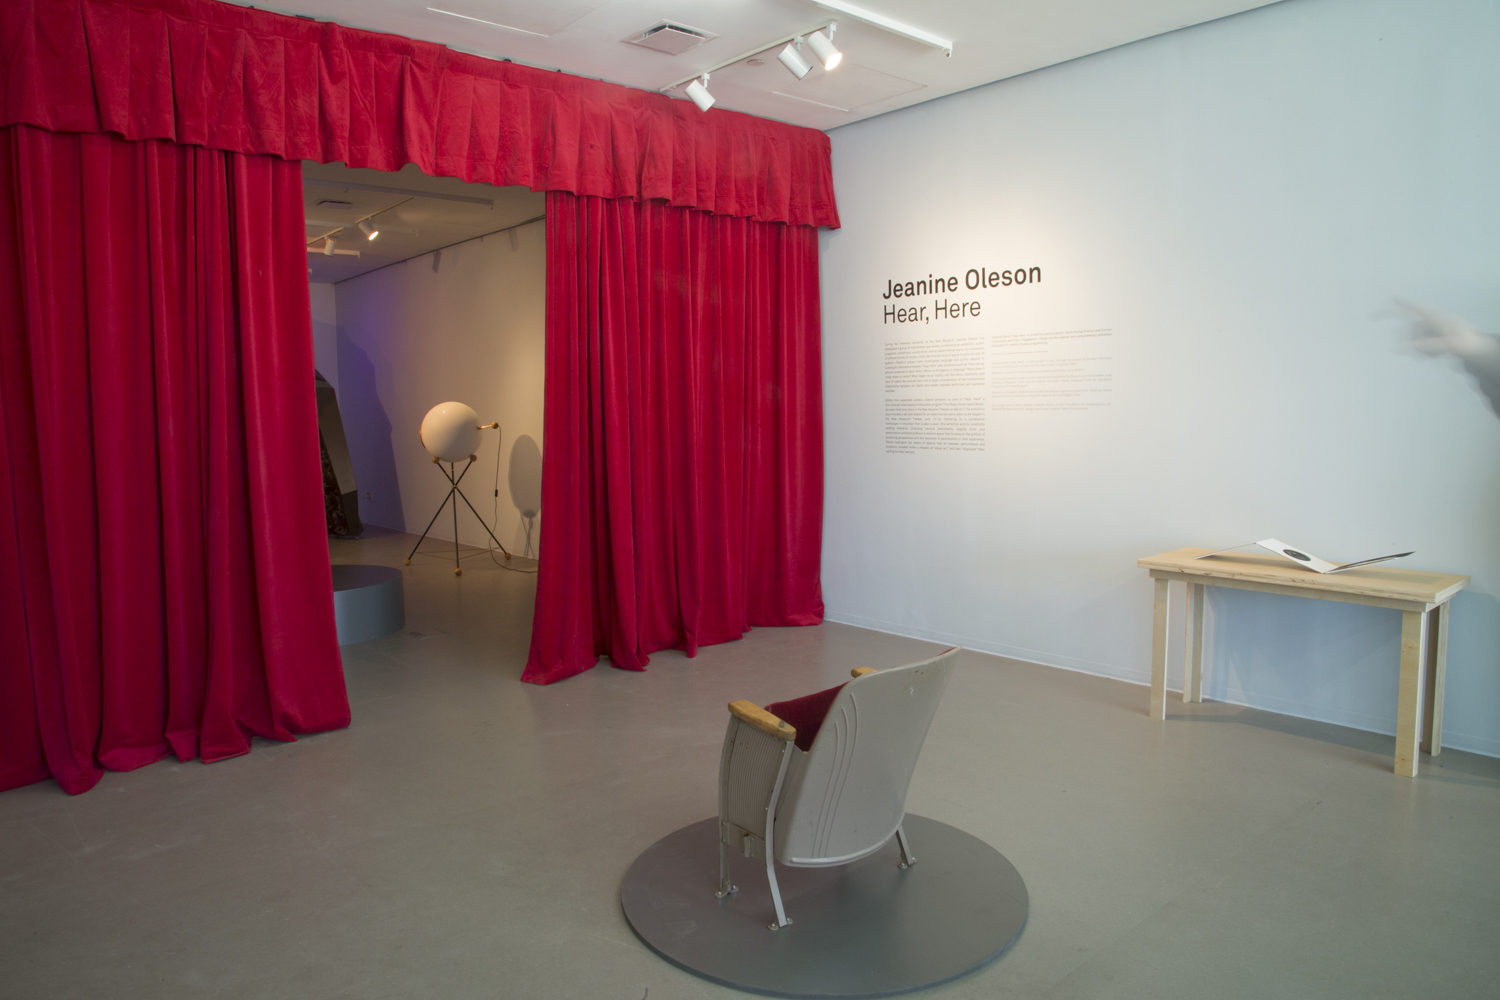 """Jeanine Oleson: Hear, Here,"" 2014, exhibition view: New Museum. Photo credit: Jesse Untract-Oakner"